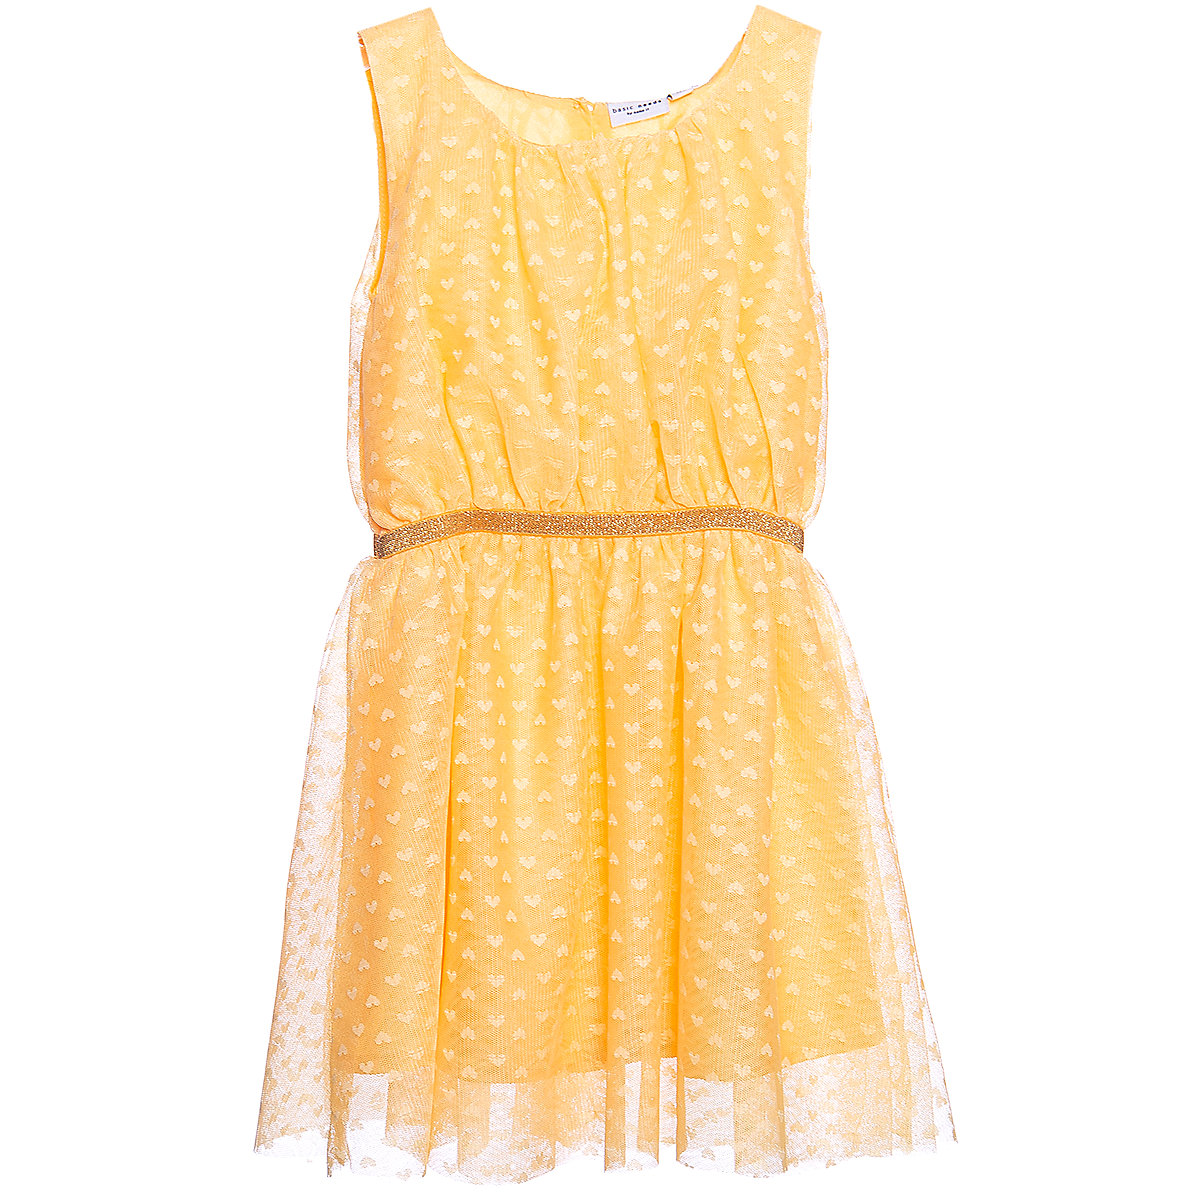 NAME IT Dresses 10626609 Dress girl children checkered pattern collar fitted silhouette sequins Polyester Casual Yellow Sleeveless Sleeve ruffle collar long sleeve lace crochet sheath dress